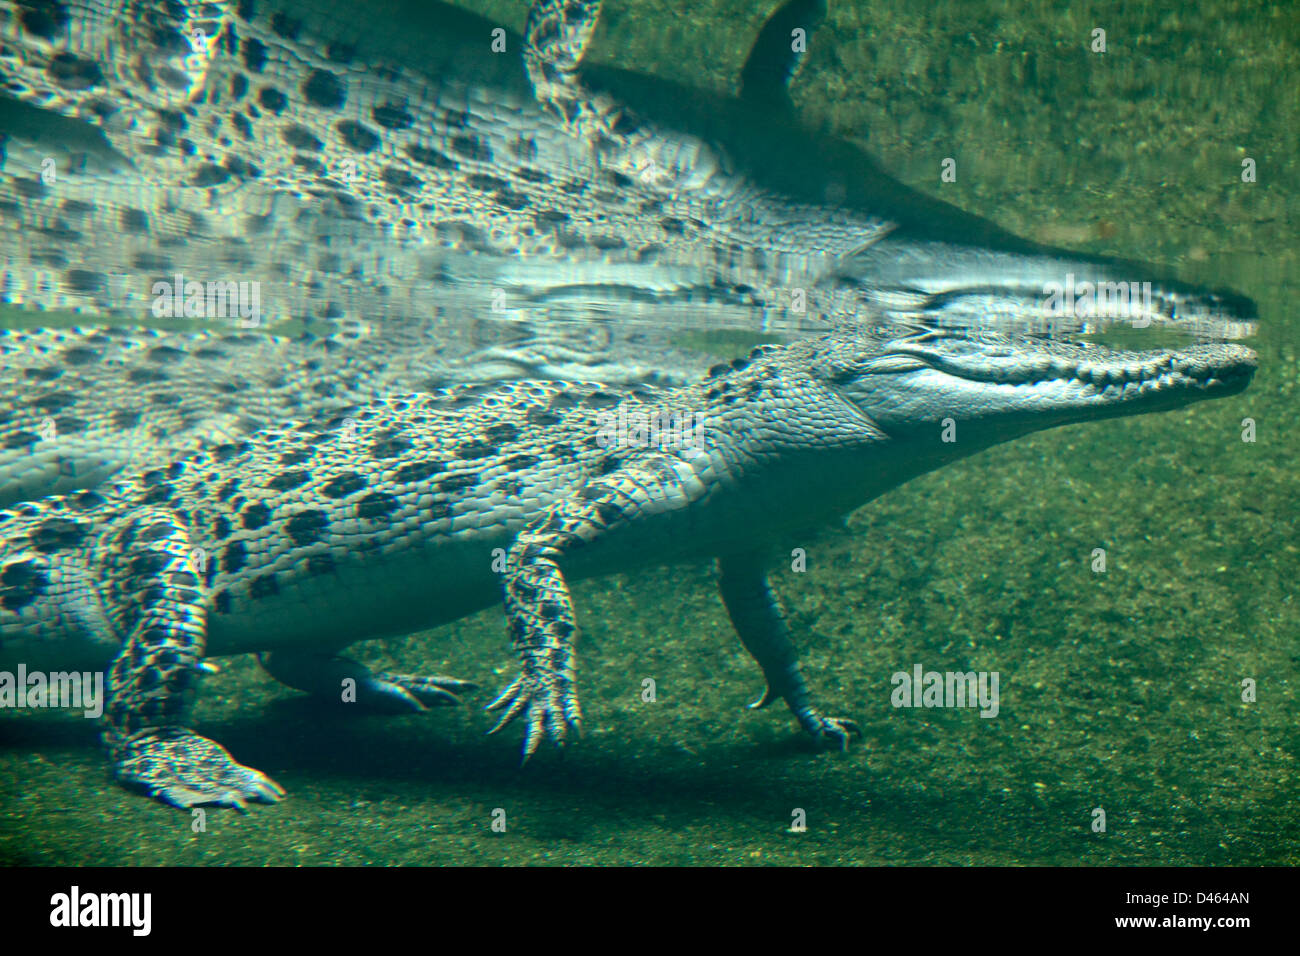 Saltwater crocodile, crocodylus porosus, underwater view, Singapore Zoo, - Stock Image